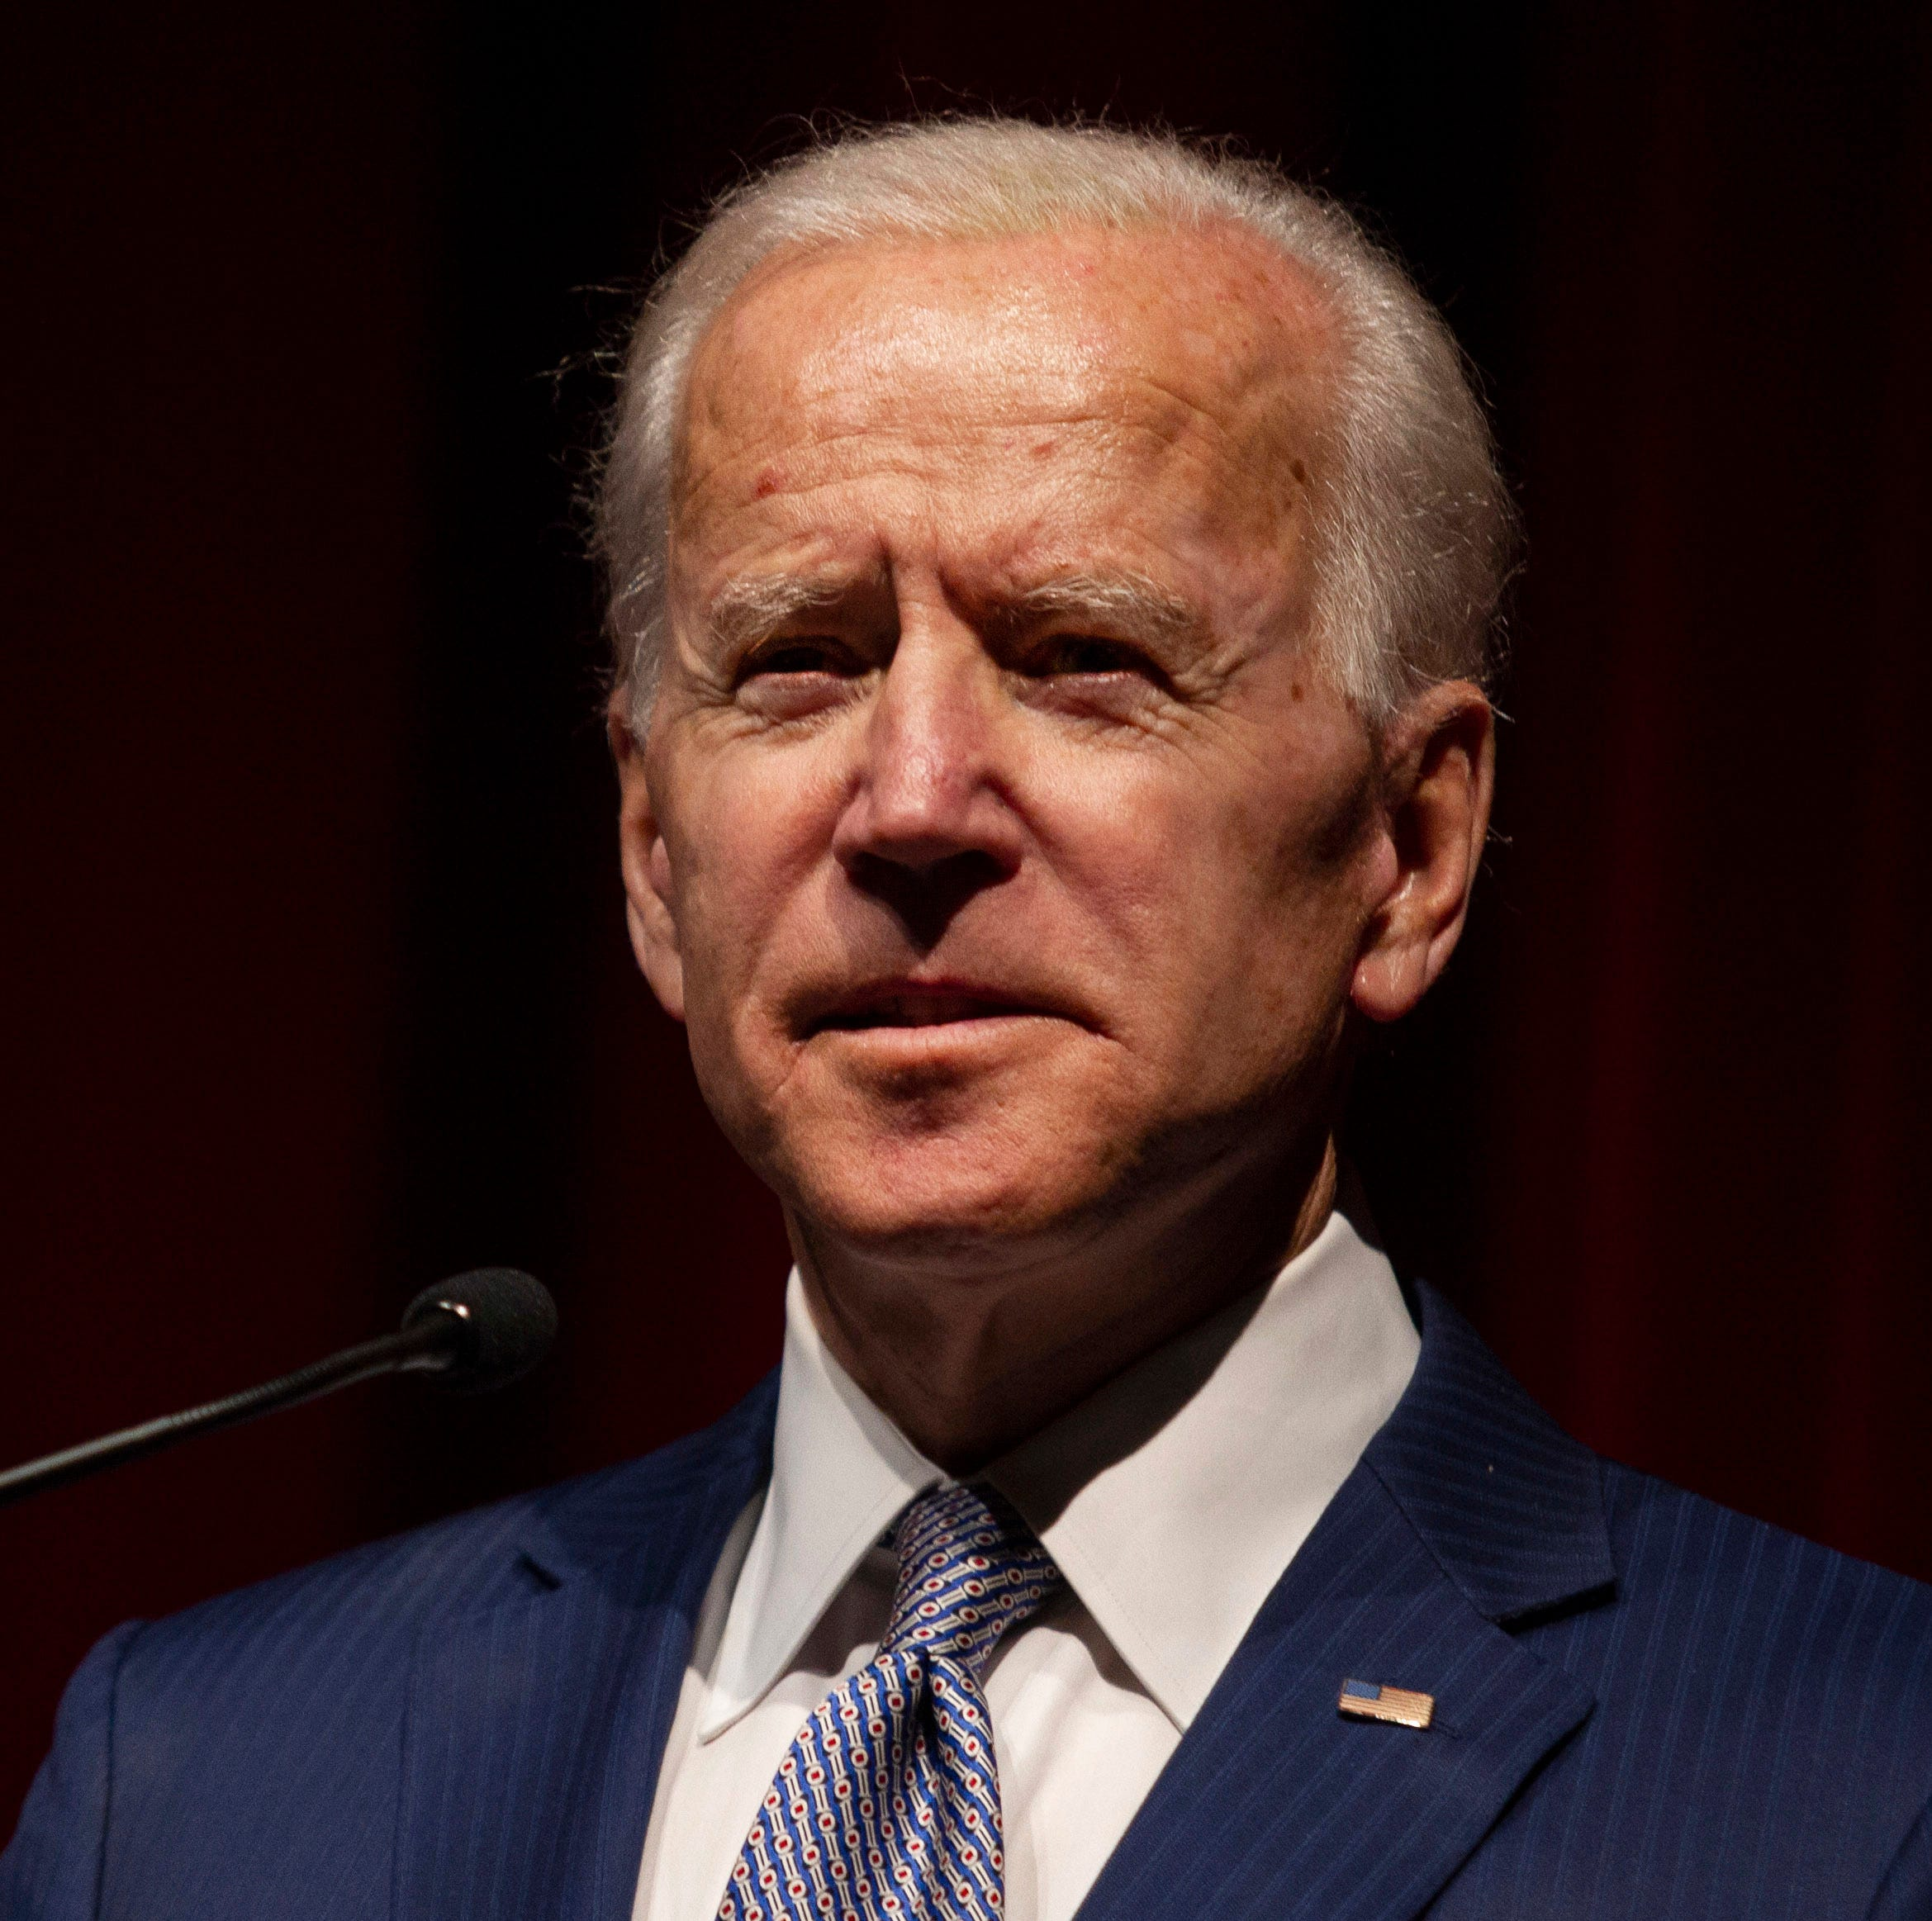 Biden says he's the most qualified person to be president at University of Montana talk